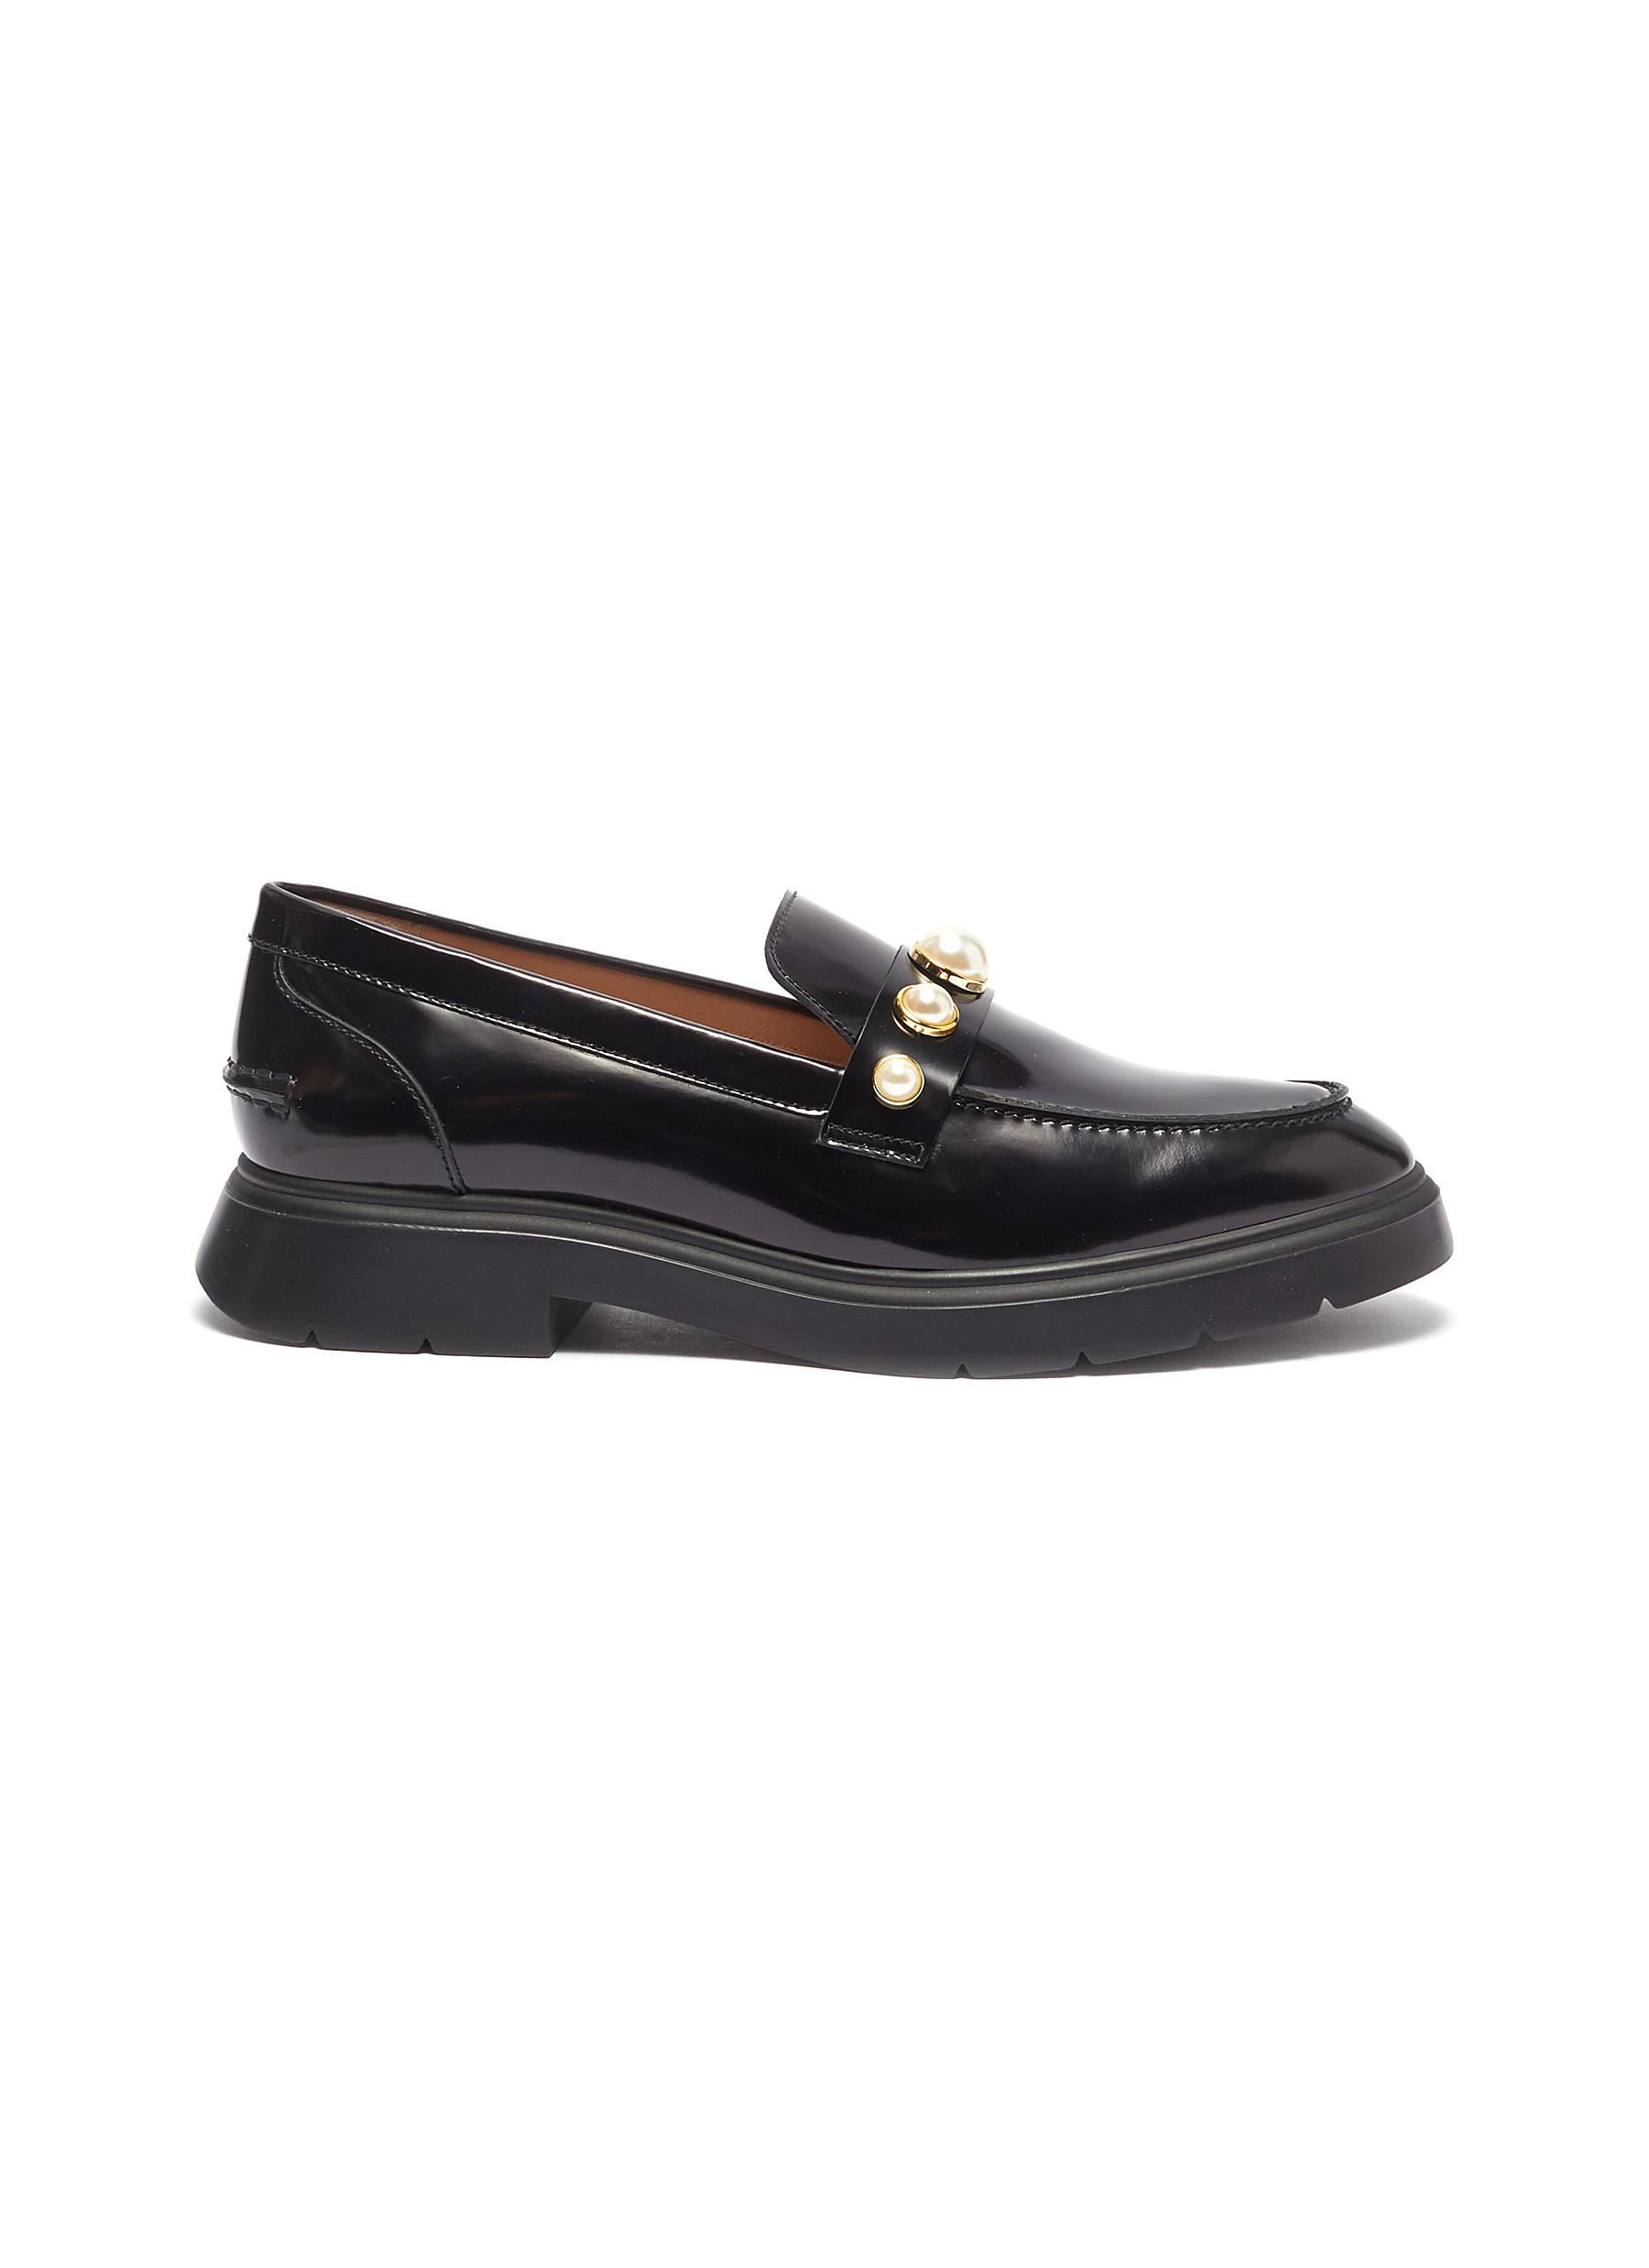 Suki faux pearl embellished leather loafers by Stuart Weitzman